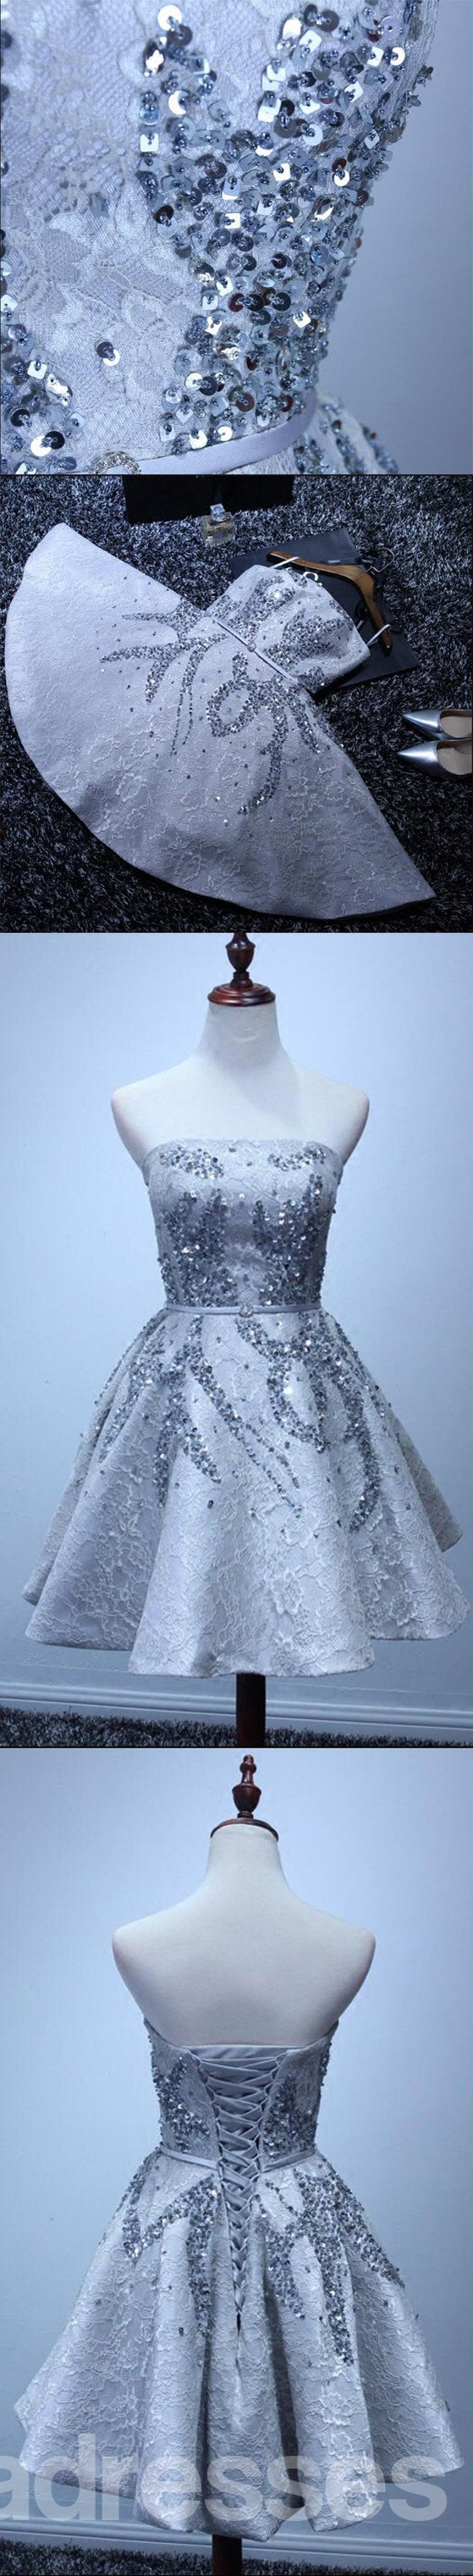 Grey Lace Beaded Homecoming Prom Dresses, Affordable Corset Back ...